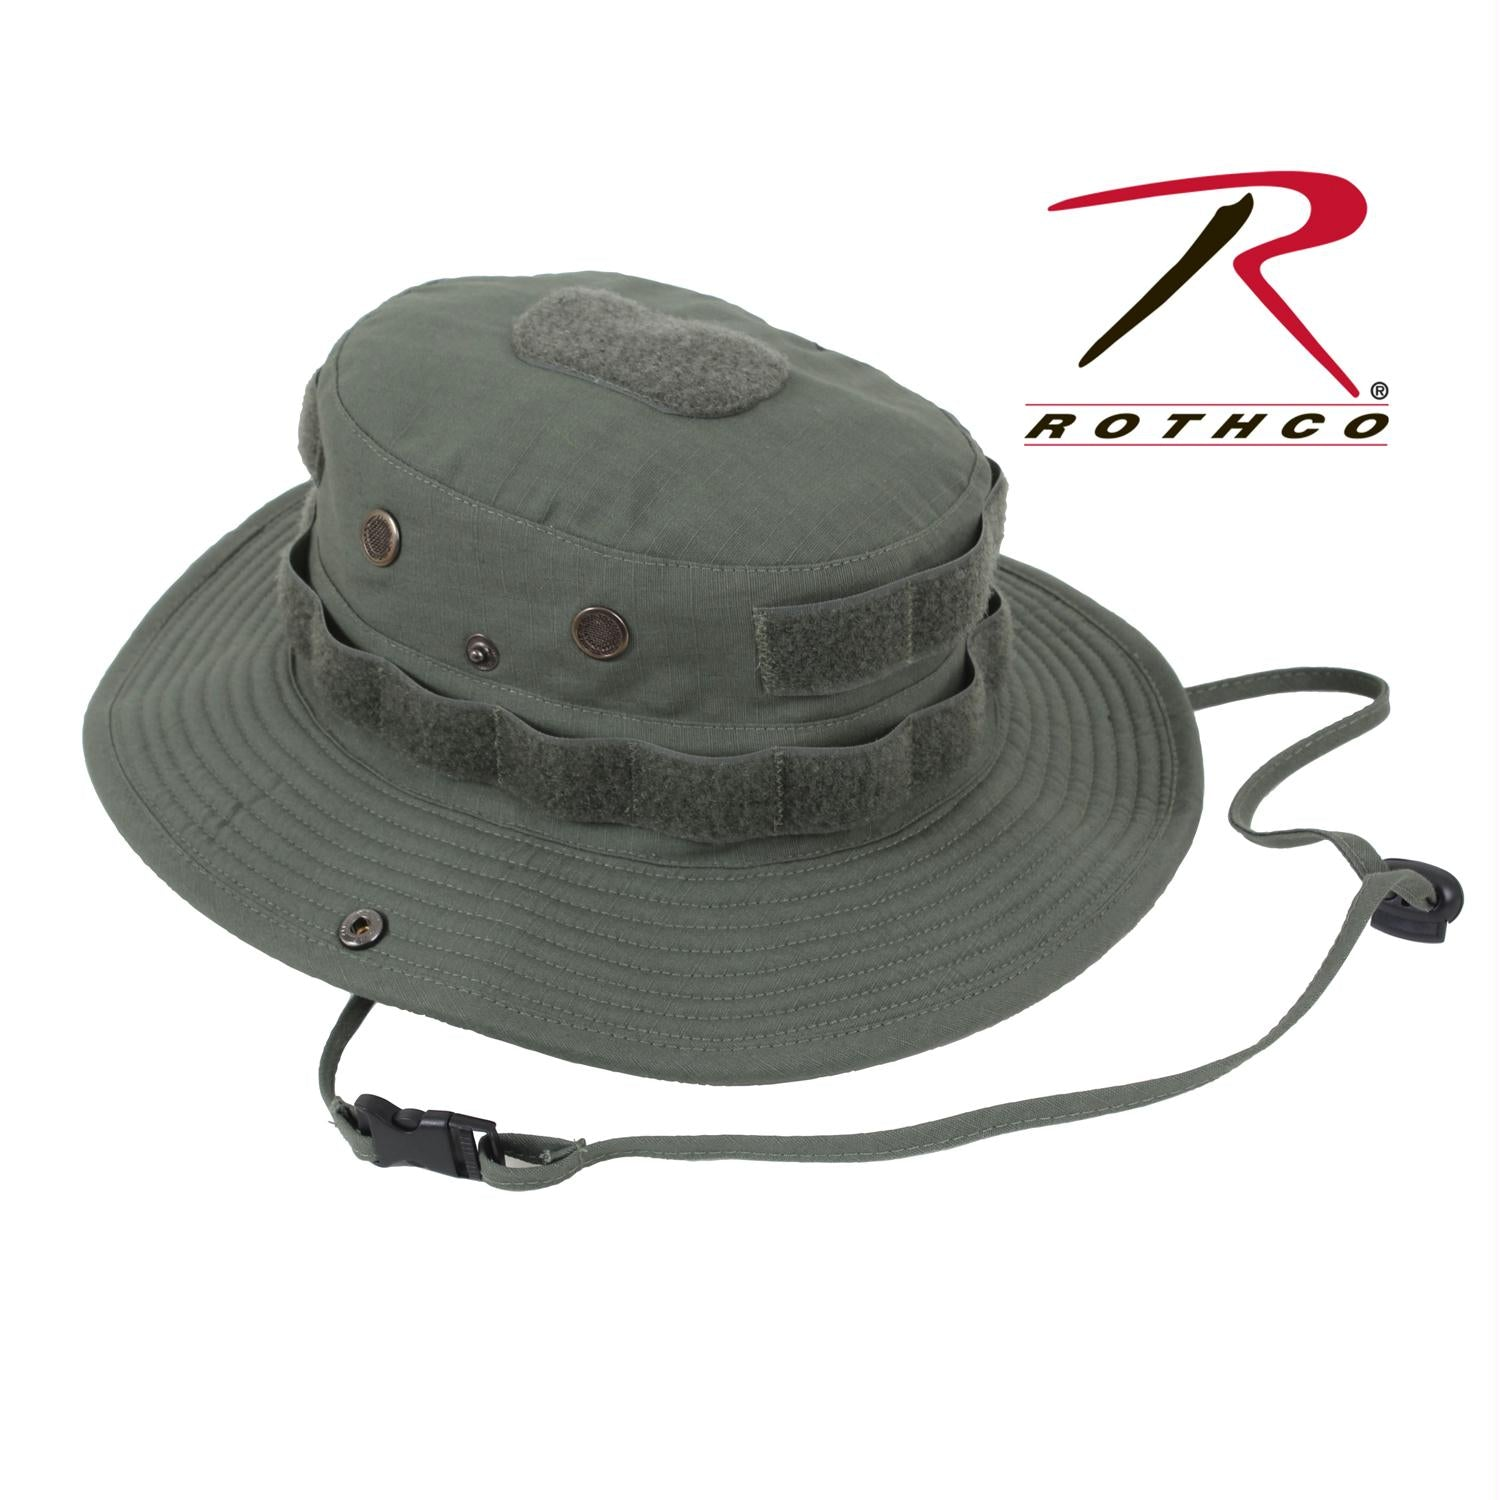 Rothco Tactical Boonie Hat - Olive Drab / 7 1/4